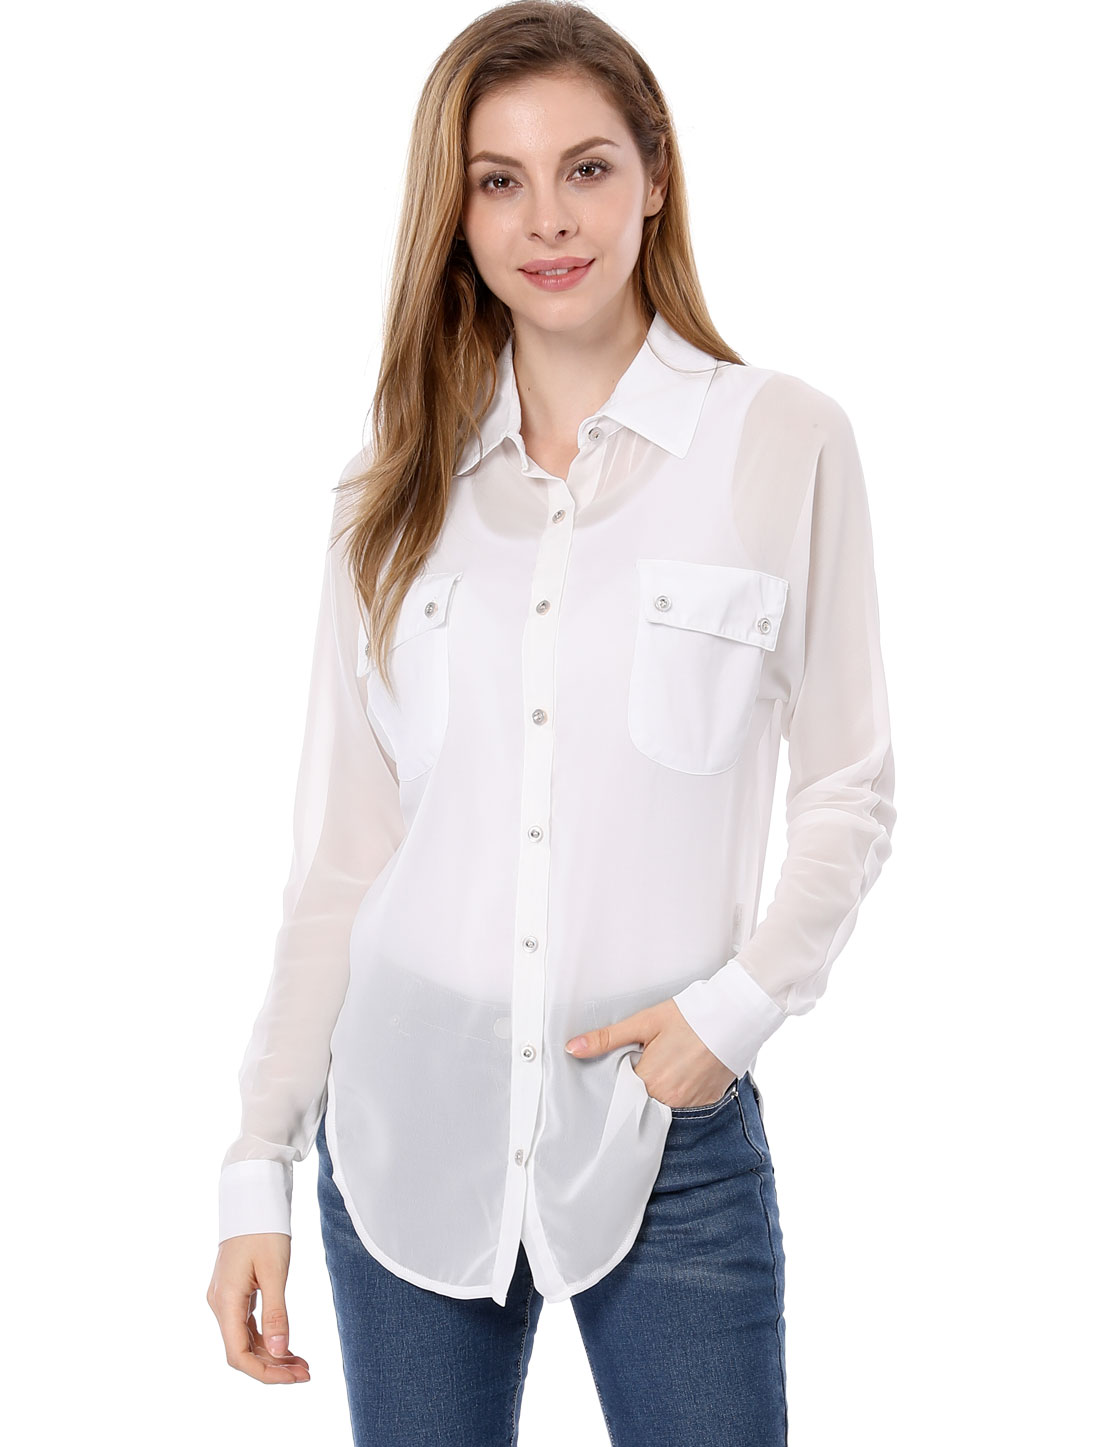 Women Pockets Front Long Dolman Sleeves Button-Down Chiffon Shirt White M